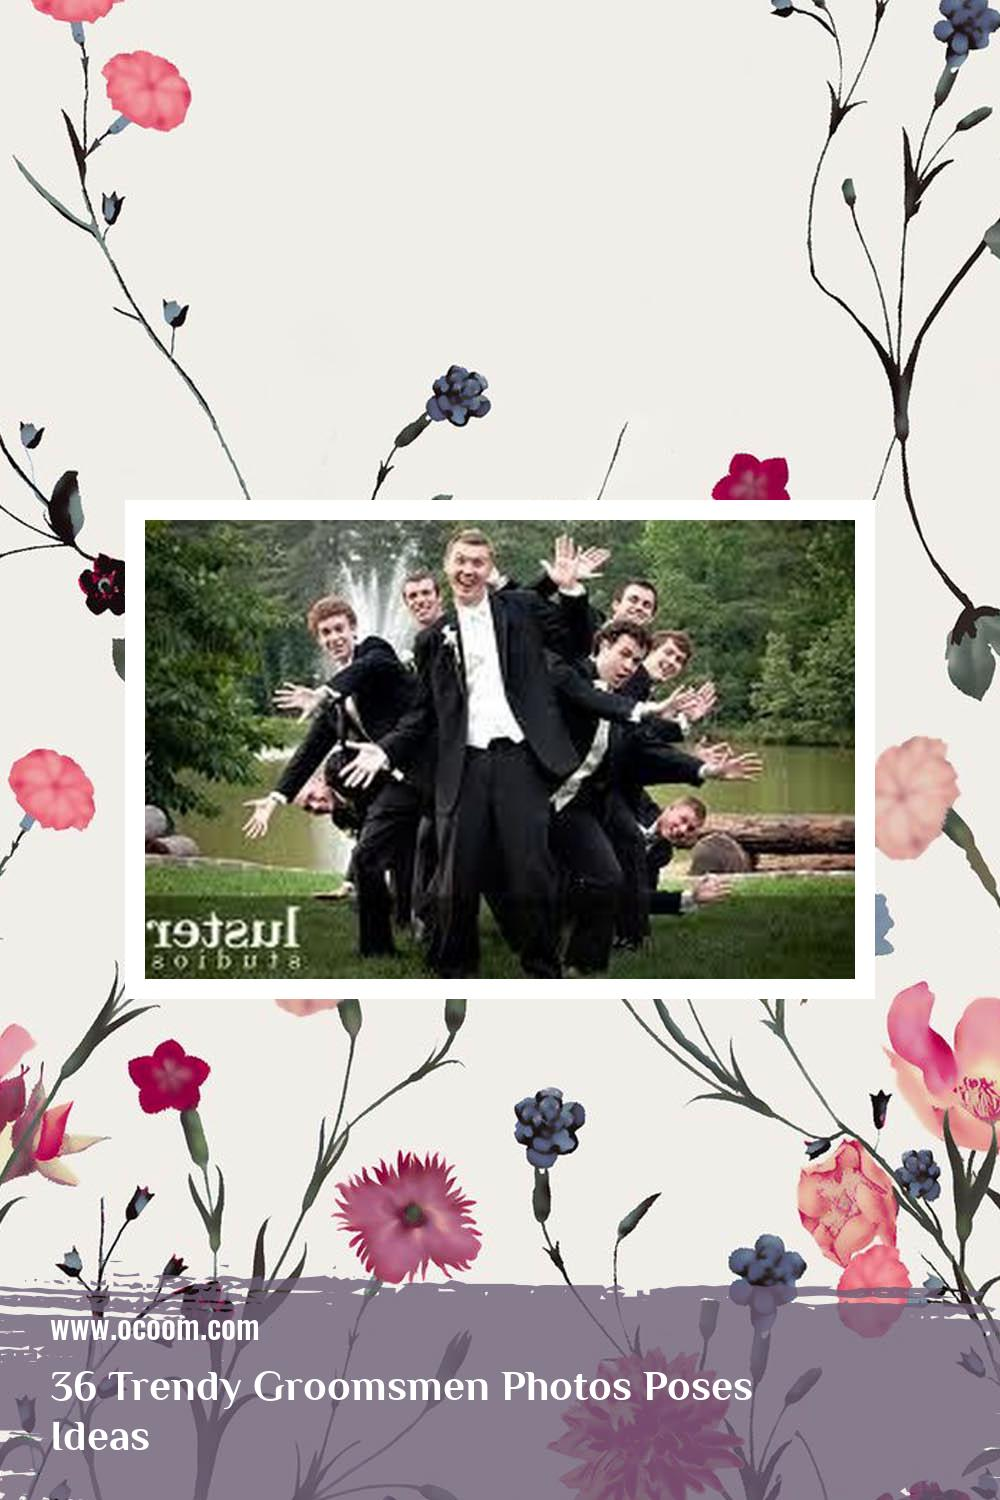 36 Trendy Groomsmen Photos Poses Ideas 22